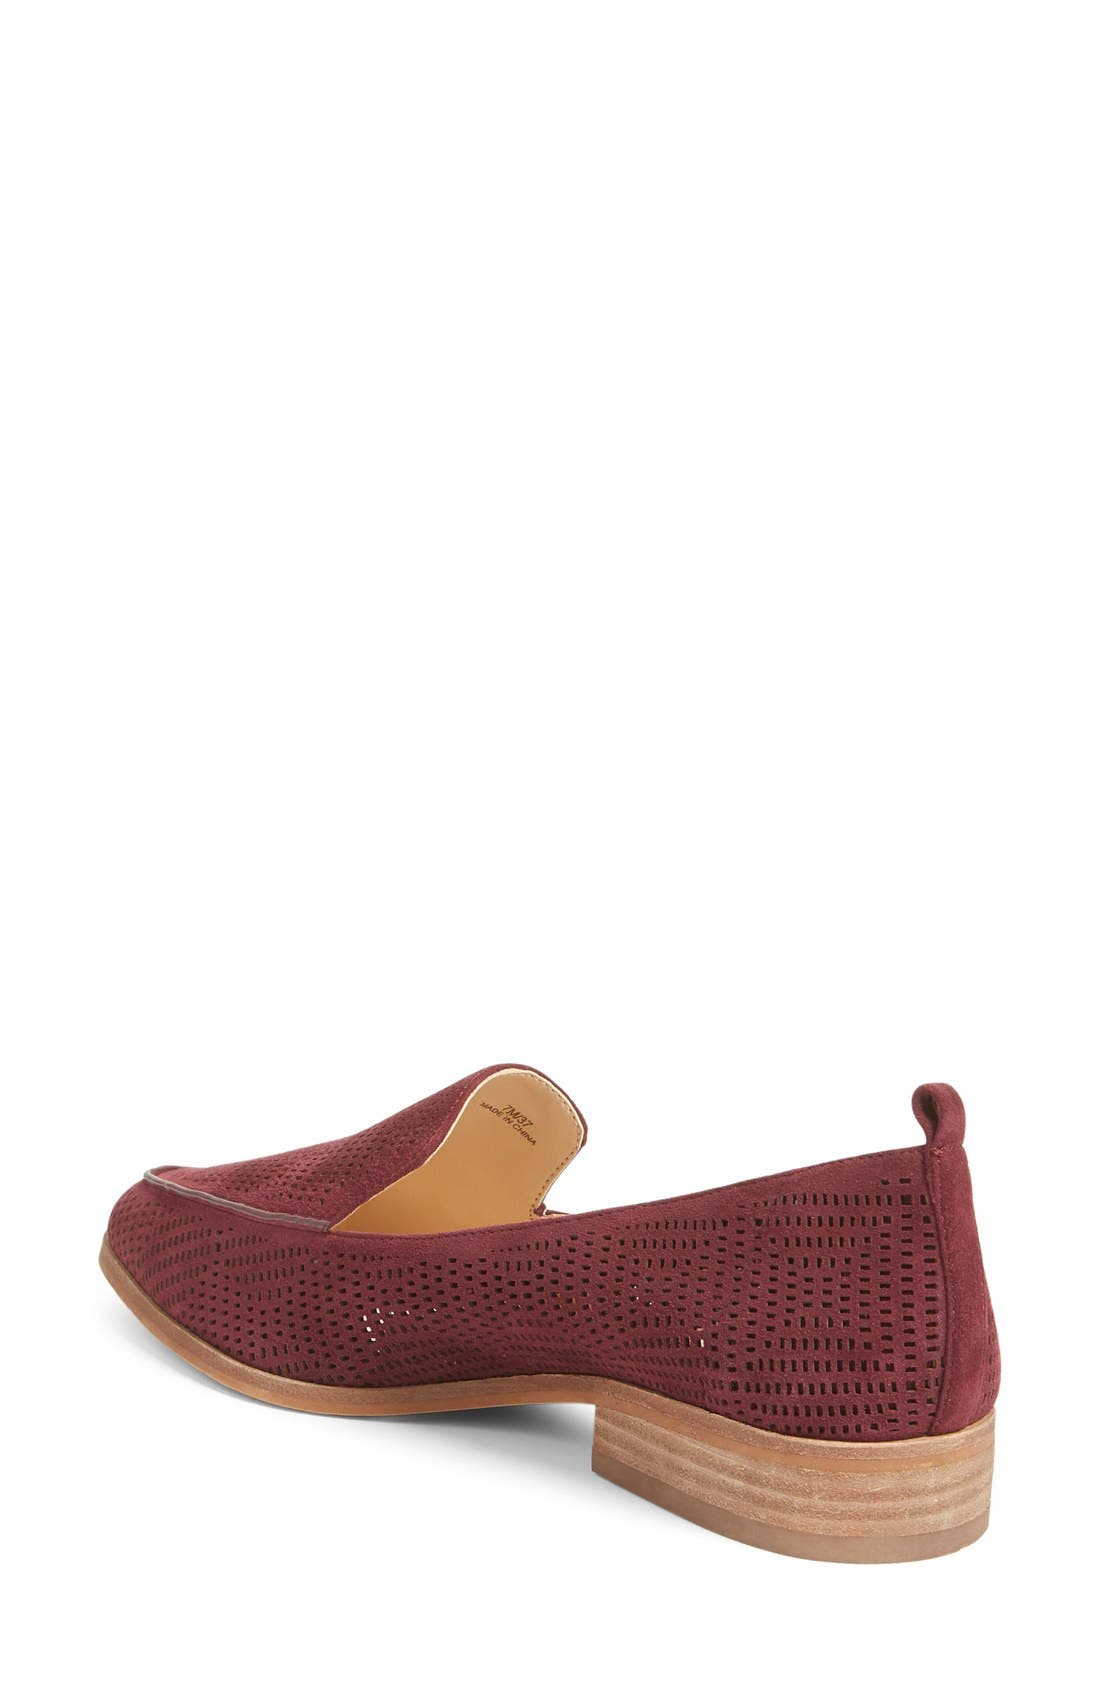 Alternate Image 2  - Vince Camuto 'Kade' Cutout Loafer (Women) (Nordstrom Exclusive)